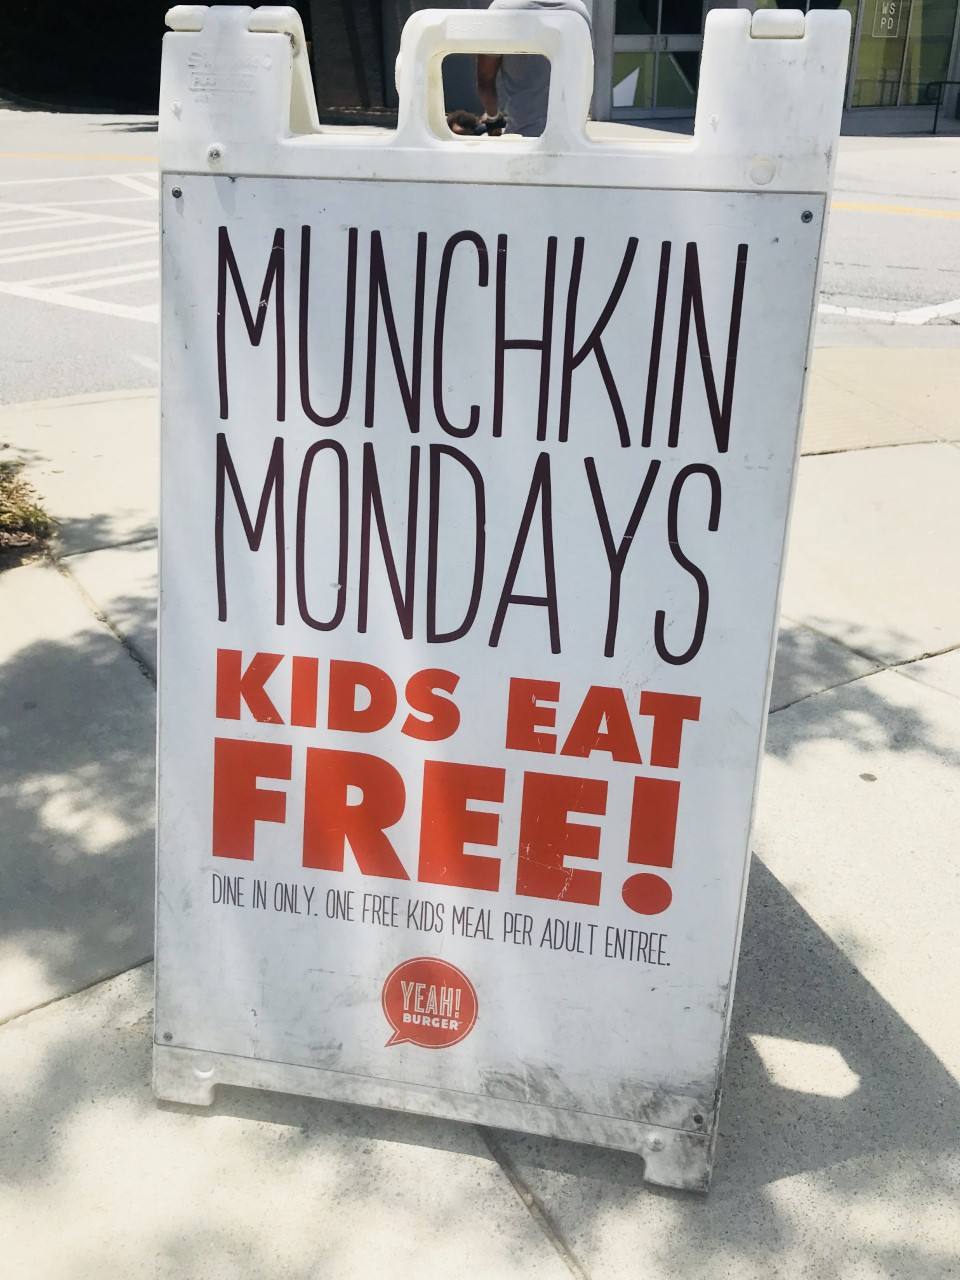 Free Food, Oh Yeah! 5 Free Food Spots for Kids